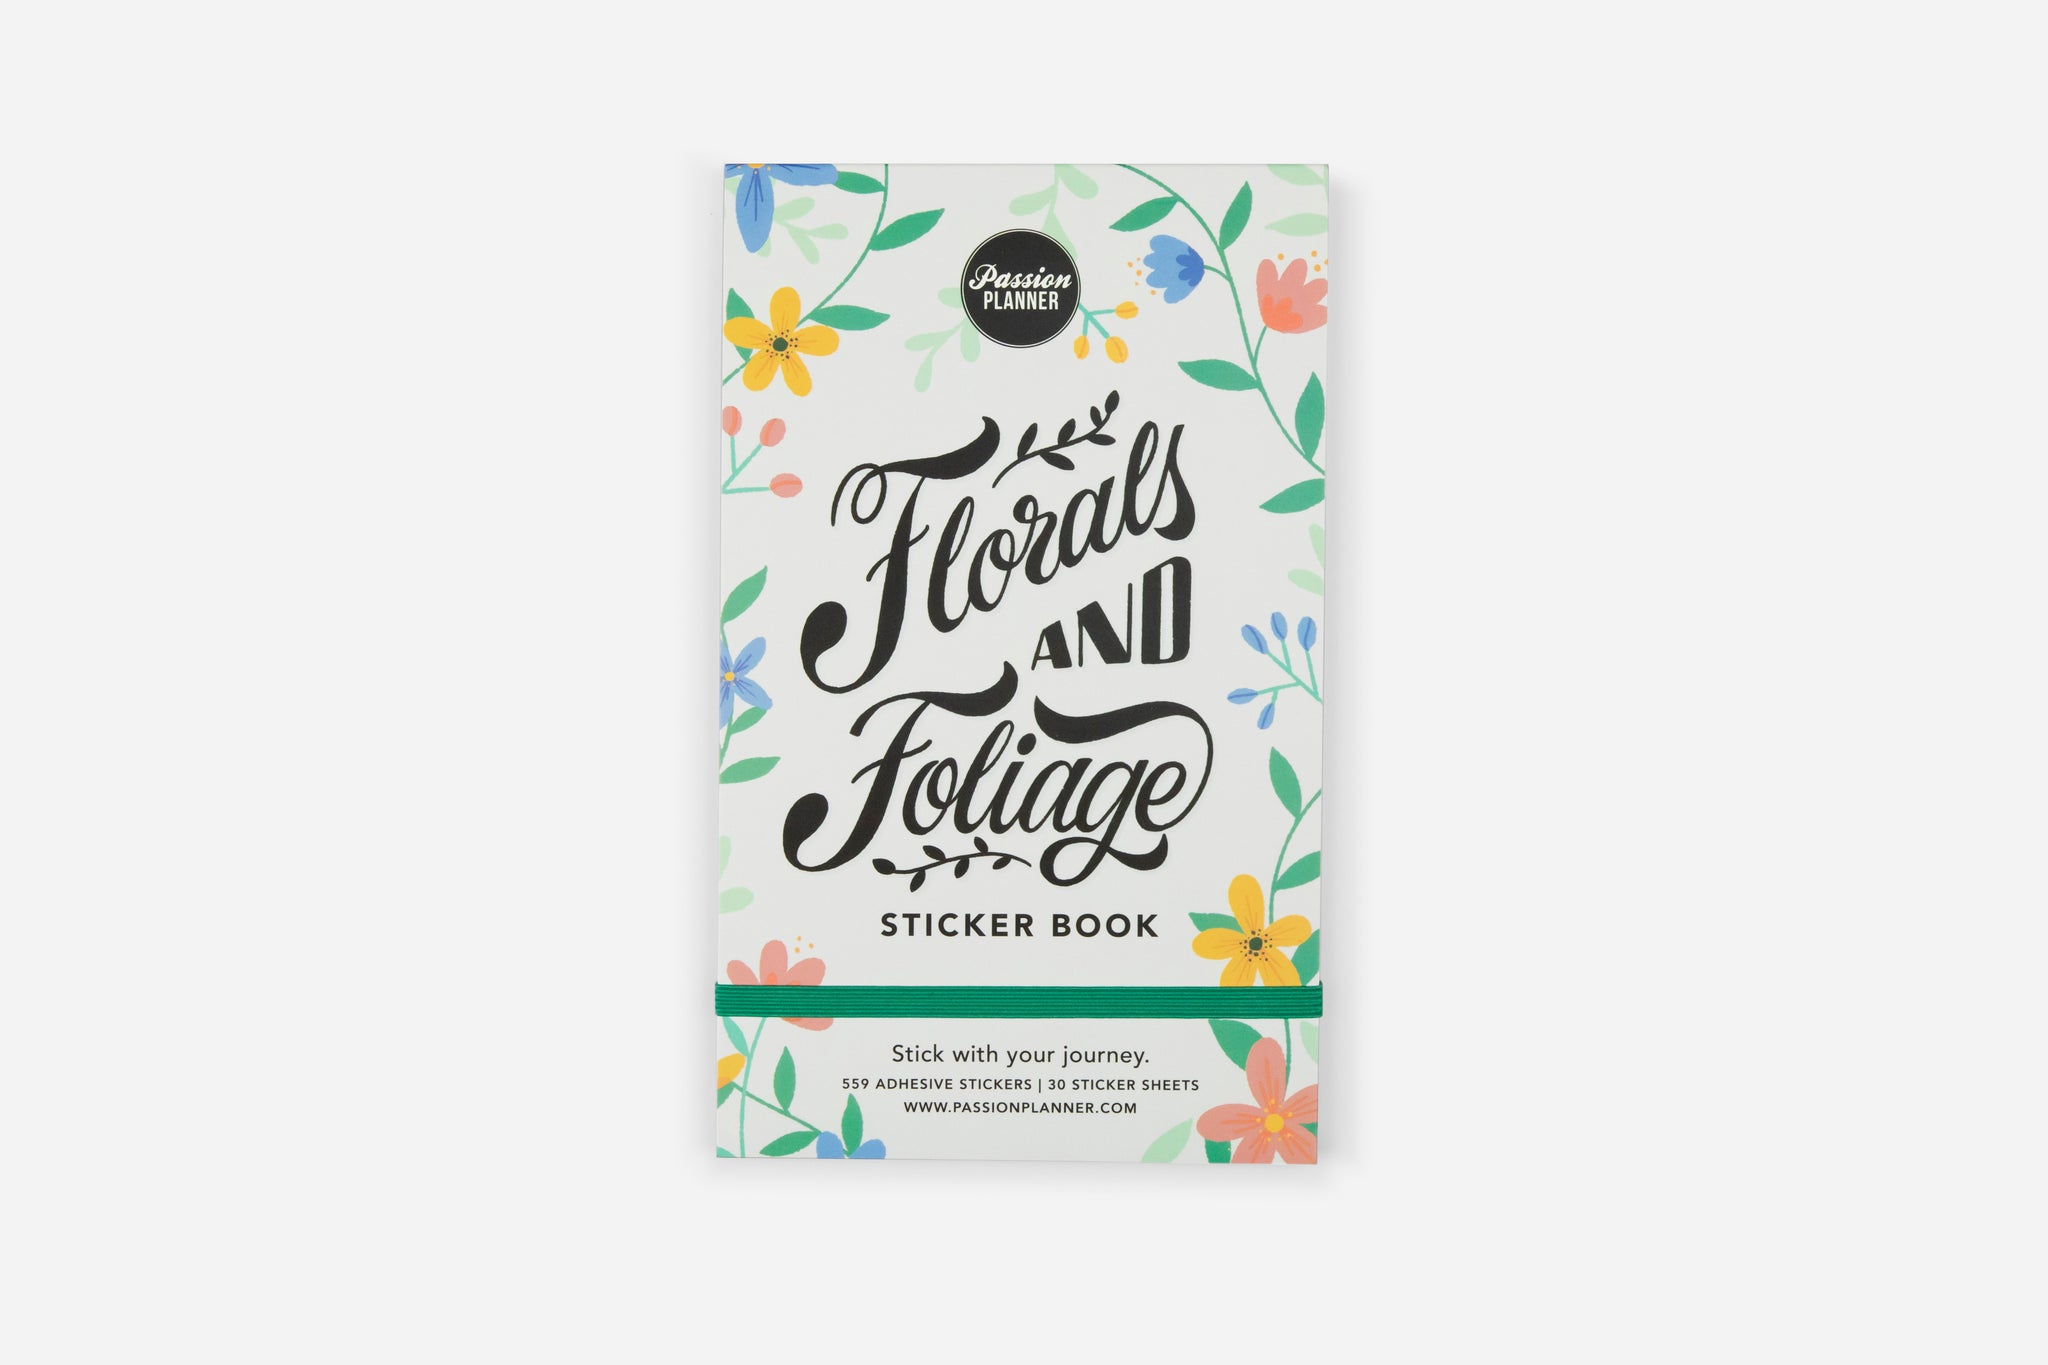 Flower Stickers - Florals and Foliage Sticker Book by Passion Planner